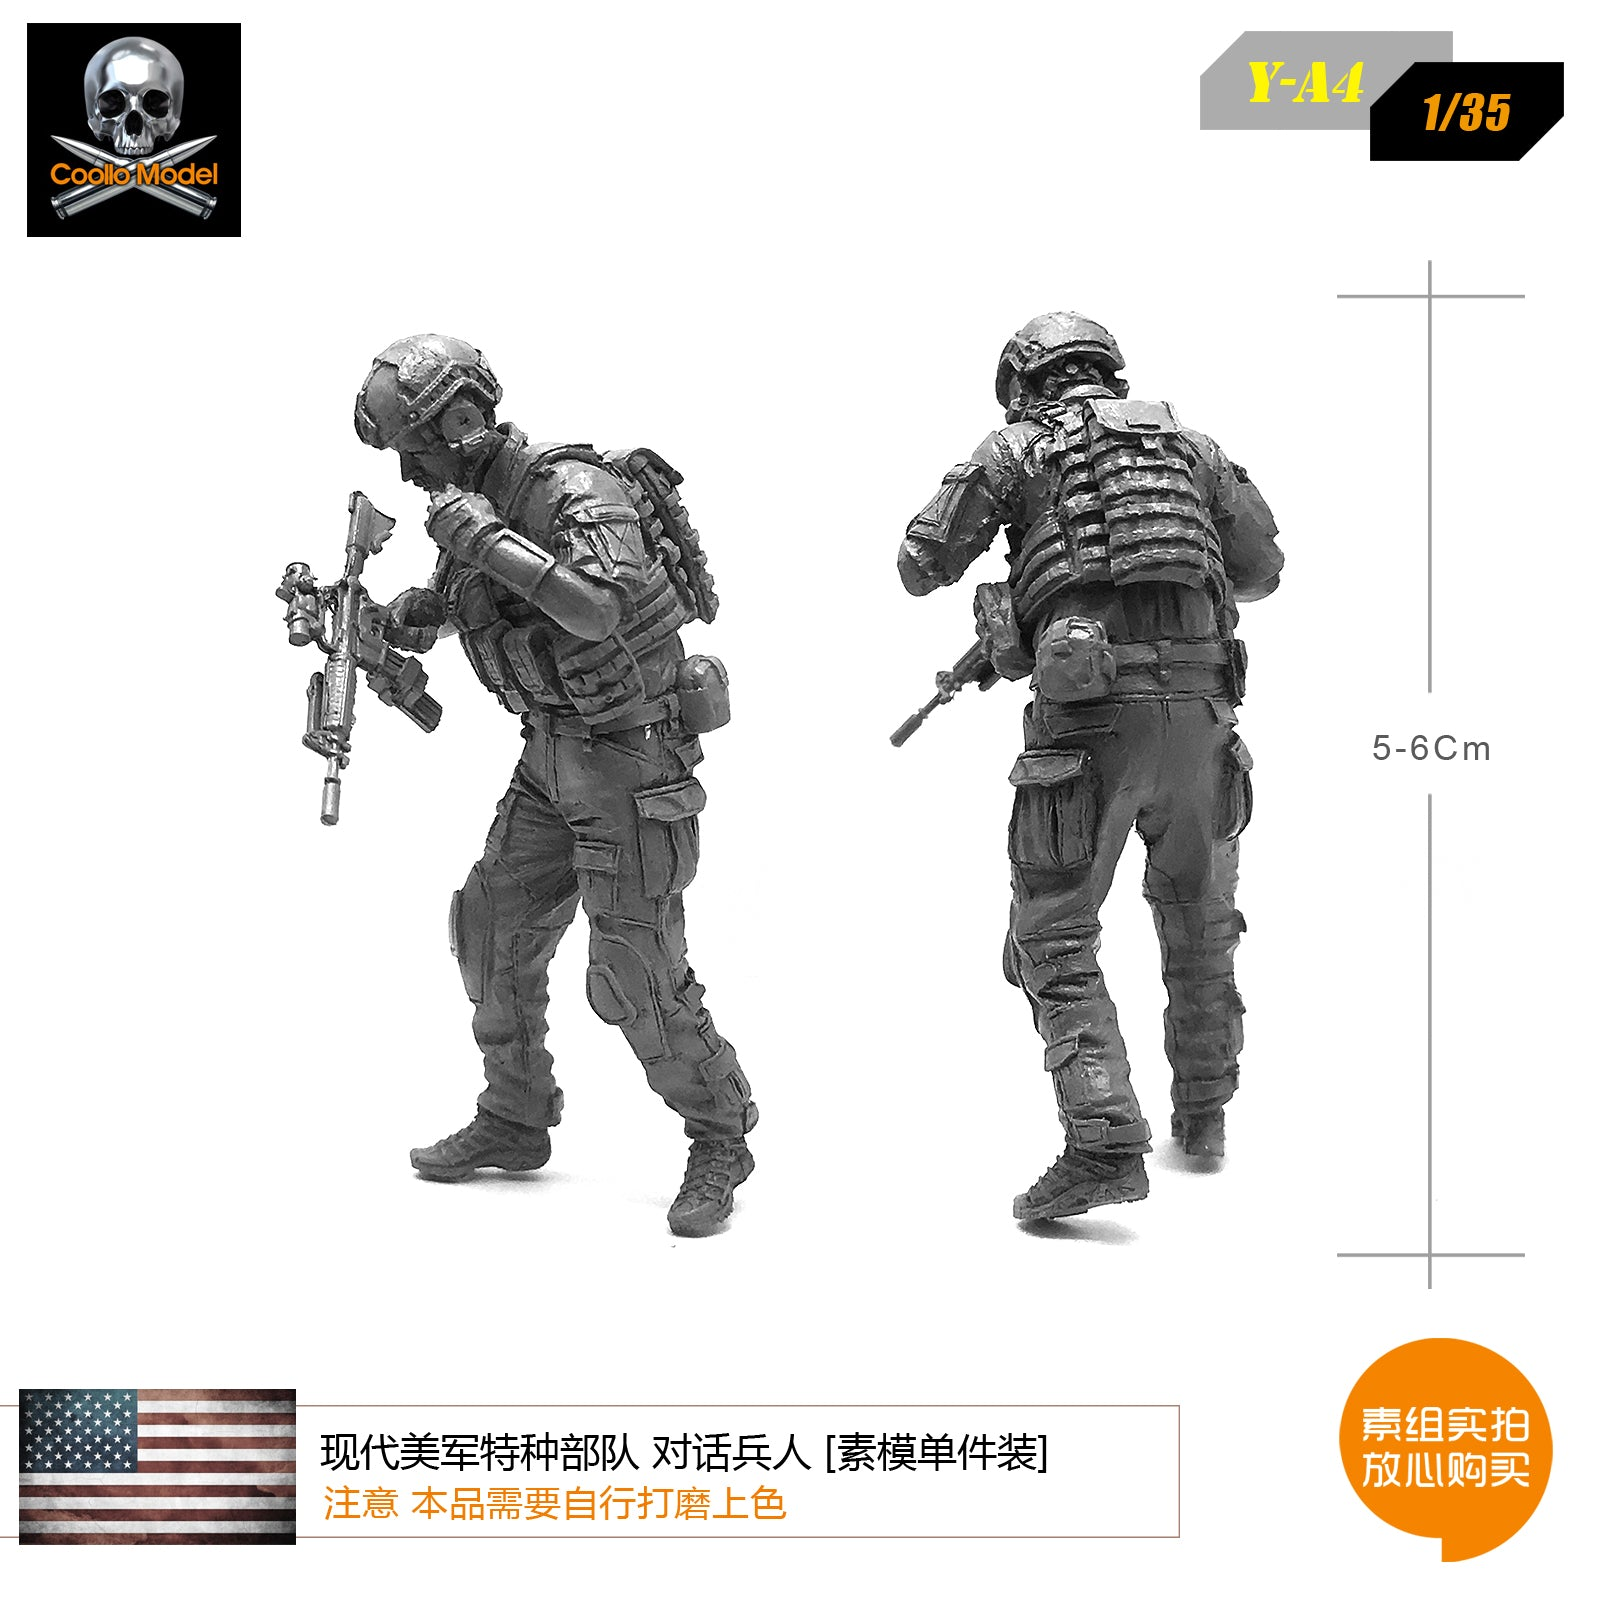 1/35 Hyundai US special forces dialogue soldiers resin model element Y-A4